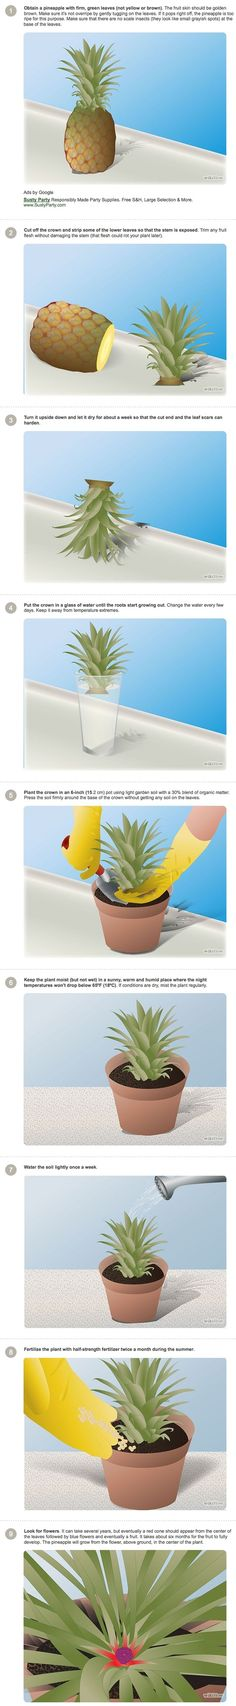 How to grow a pineapple tree! How cute... even if I'm allergic, it'd be fun!